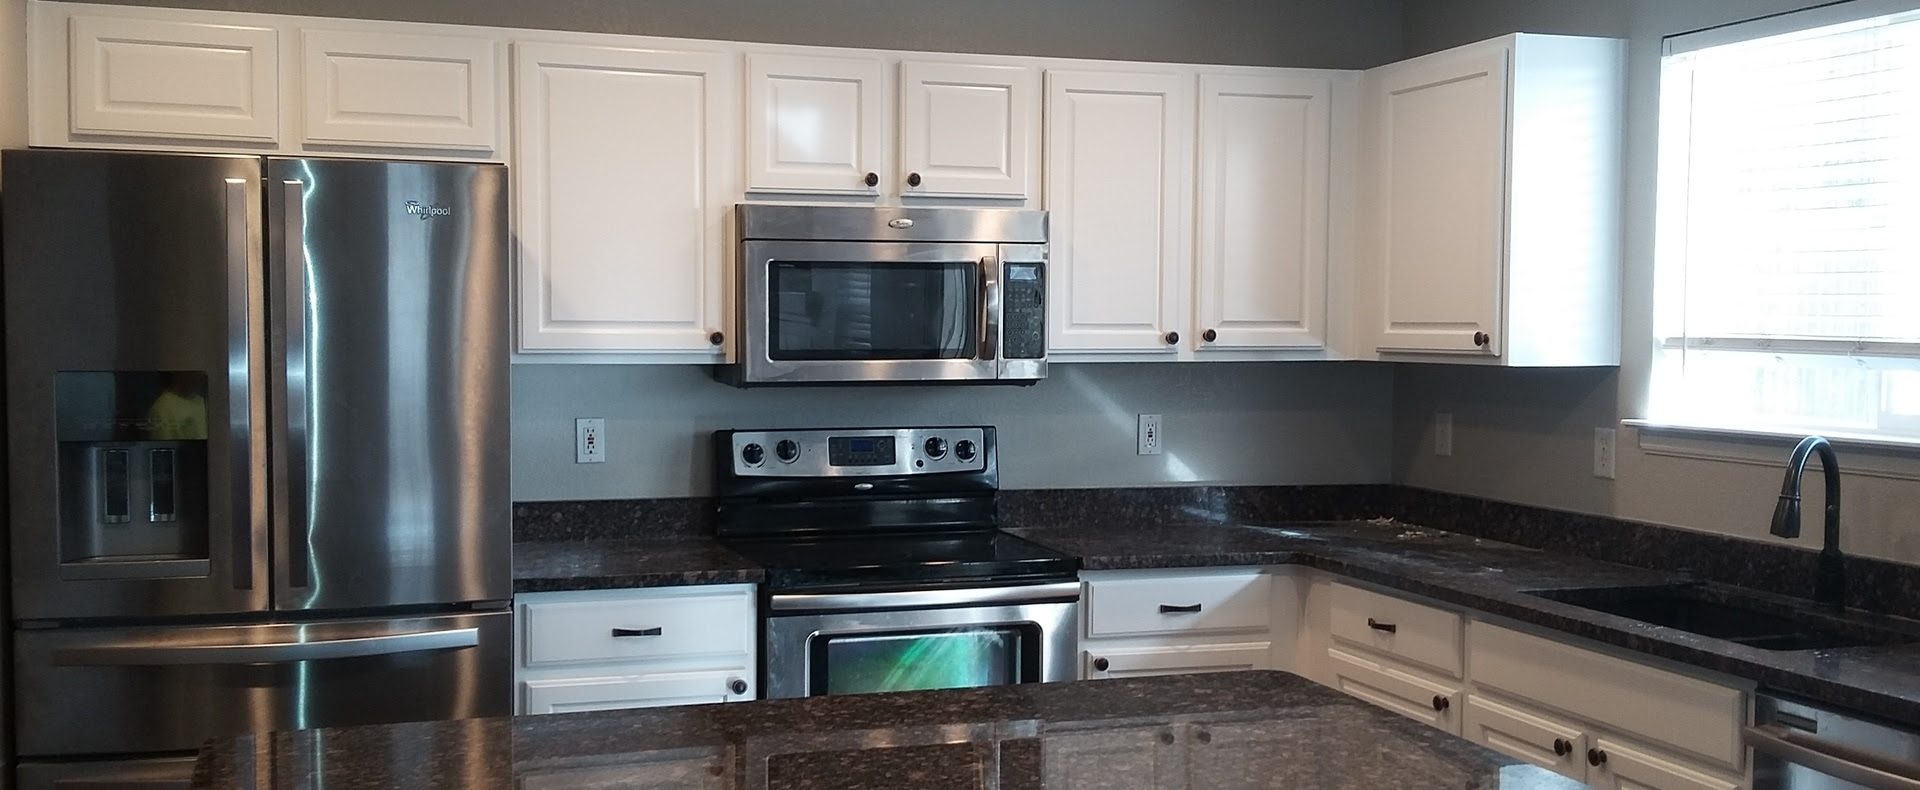 Cabinet Painting Services | Kitchen Cabinet Painters ...